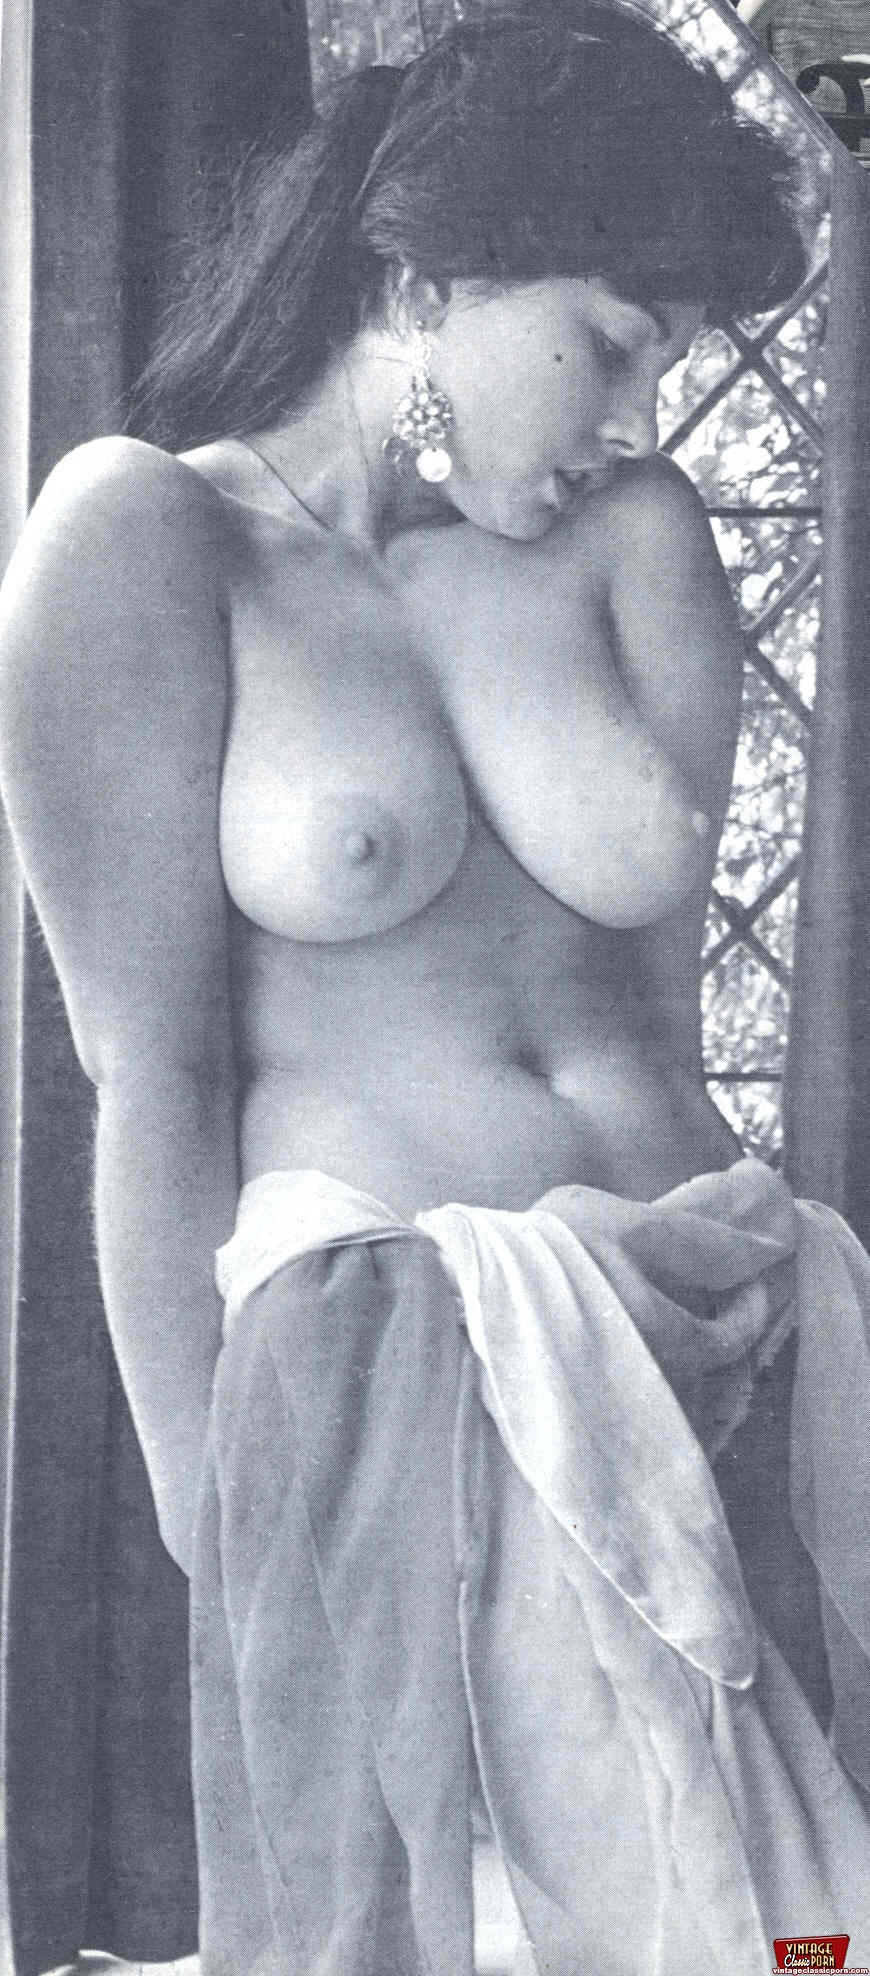 Useful topic nude vintage june palmer afraid, that not